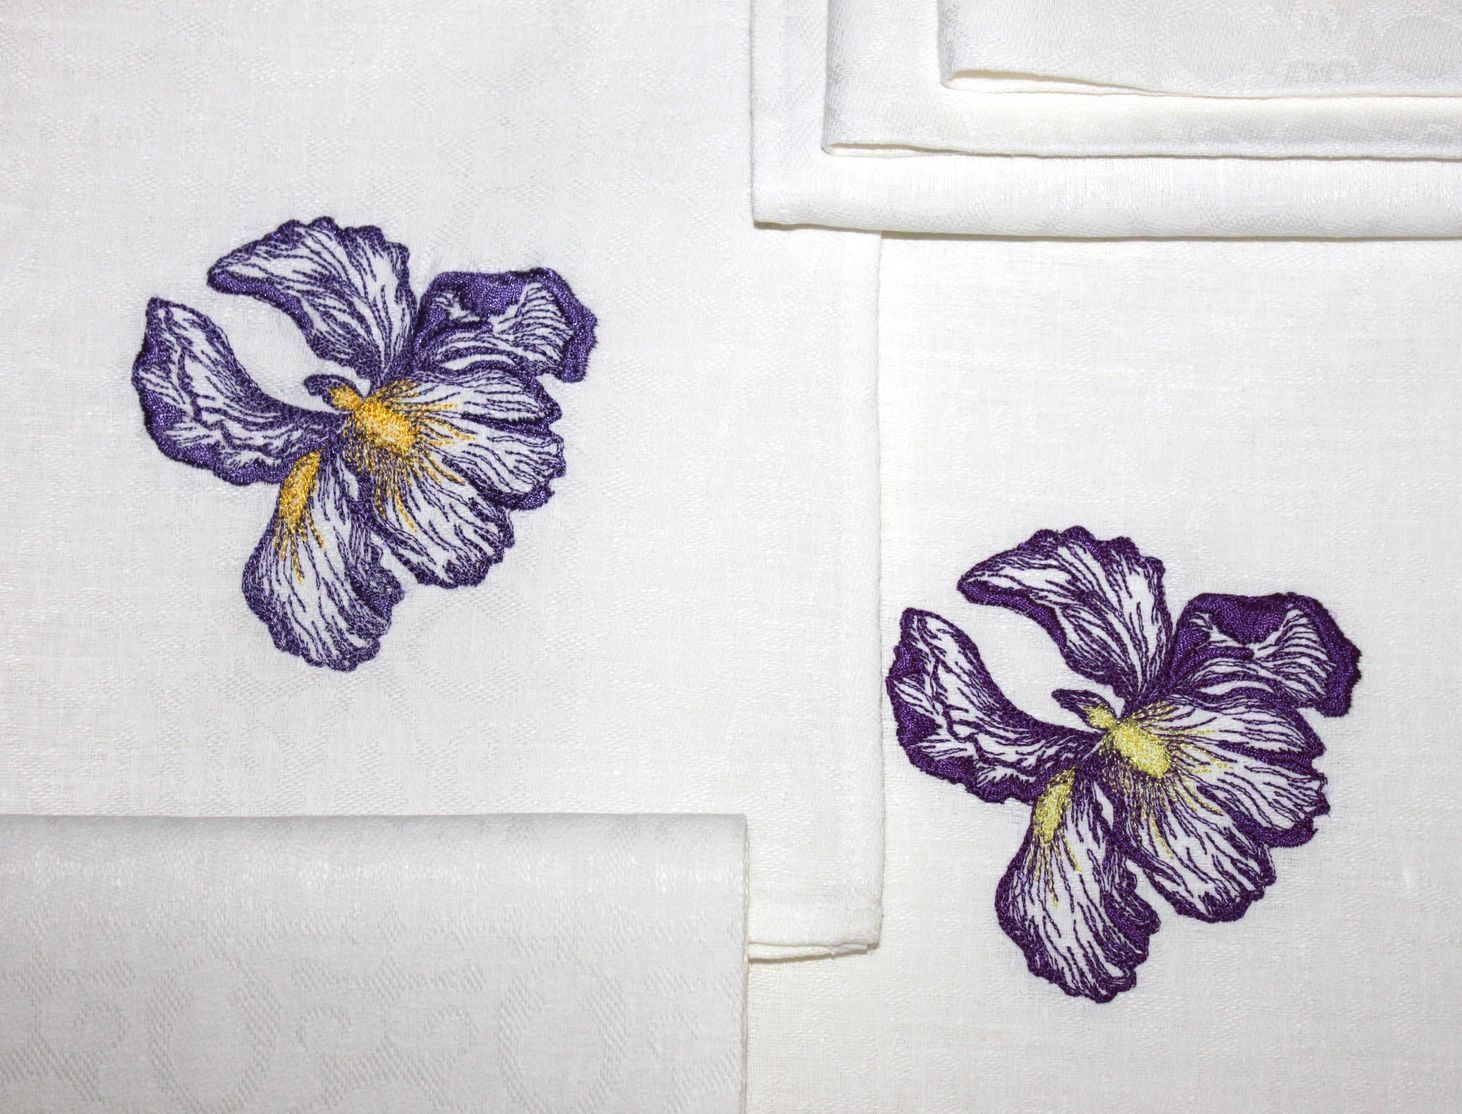 Embroidered Kitchen Napkins With Iris Free Design Author Ekaterina Vadelova Kitche Free Machine Embroidery Designs Free Machine Embroidery Embroidery Designs